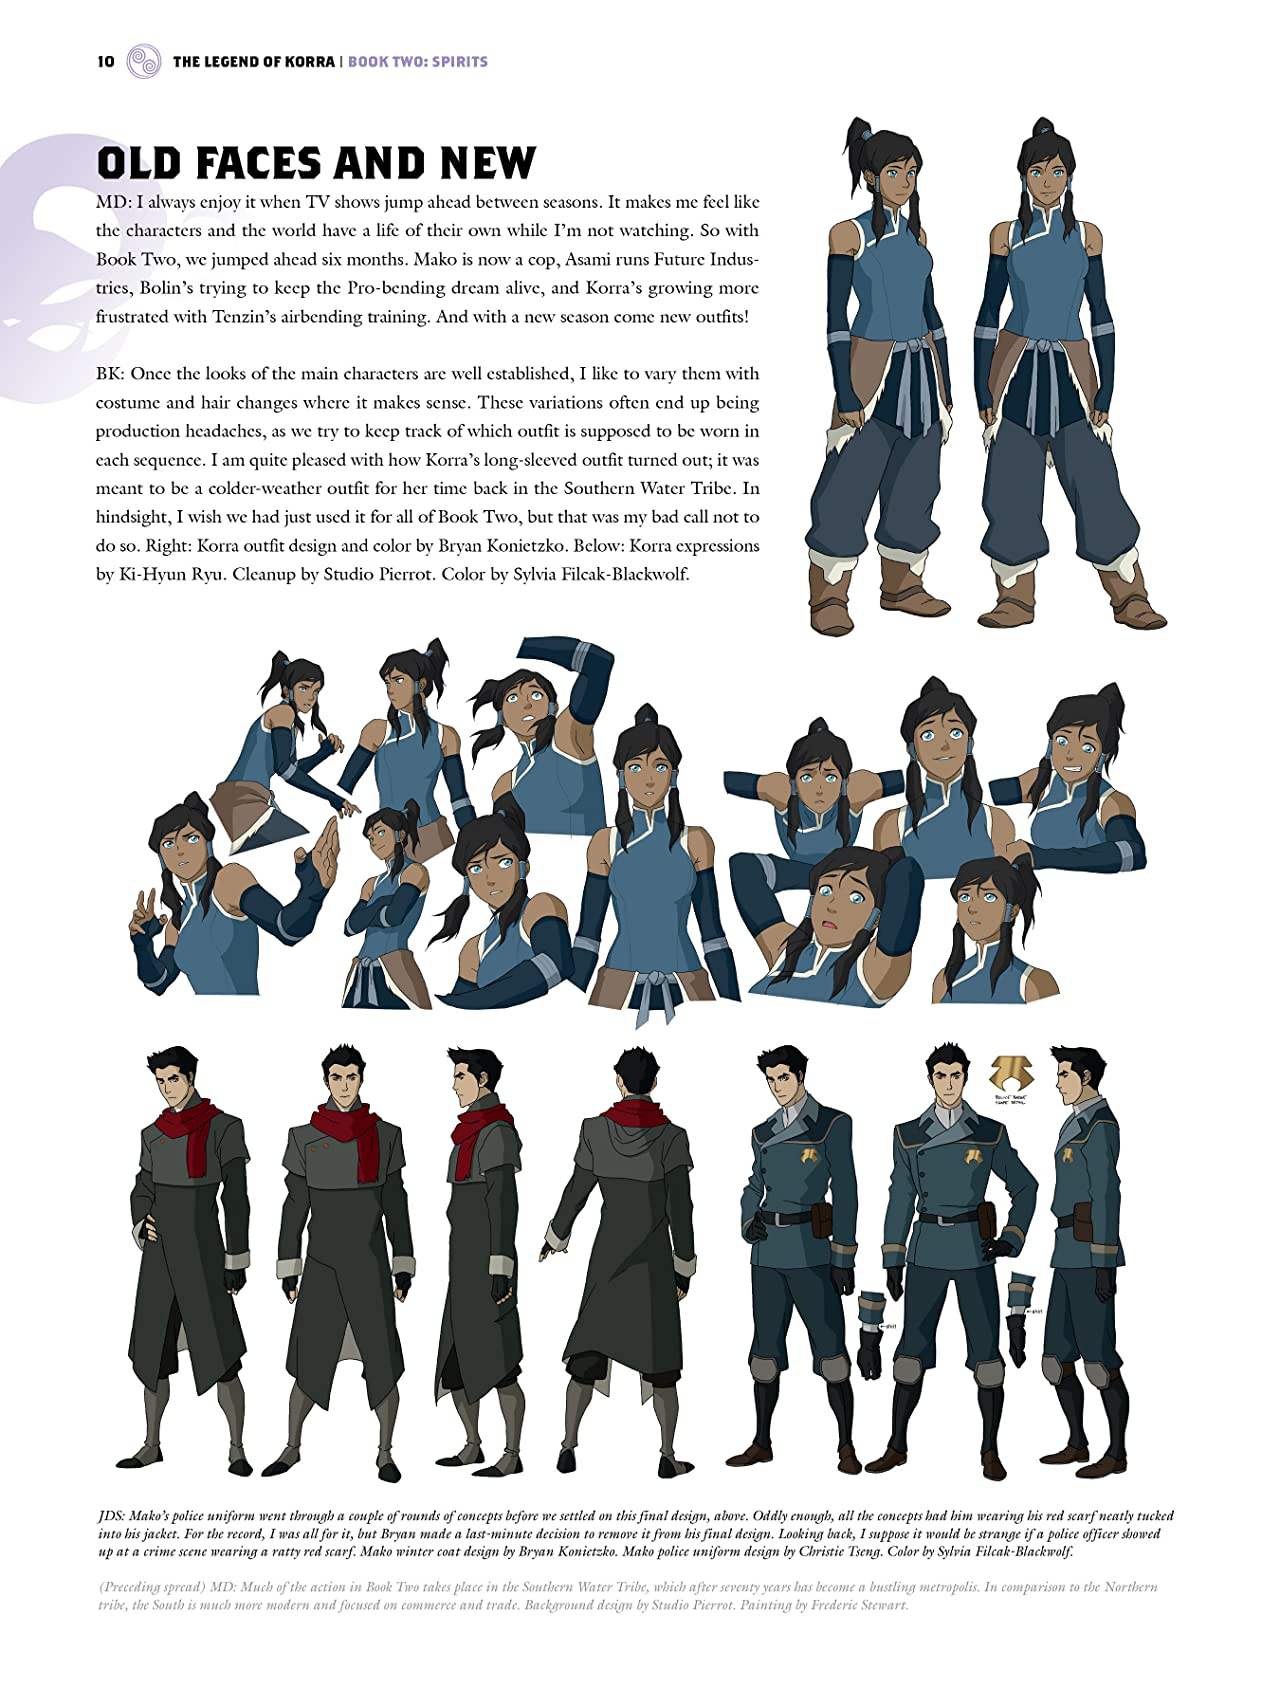 The Legend of Korra: The Art of the Animated Series - Book Two: Spirits